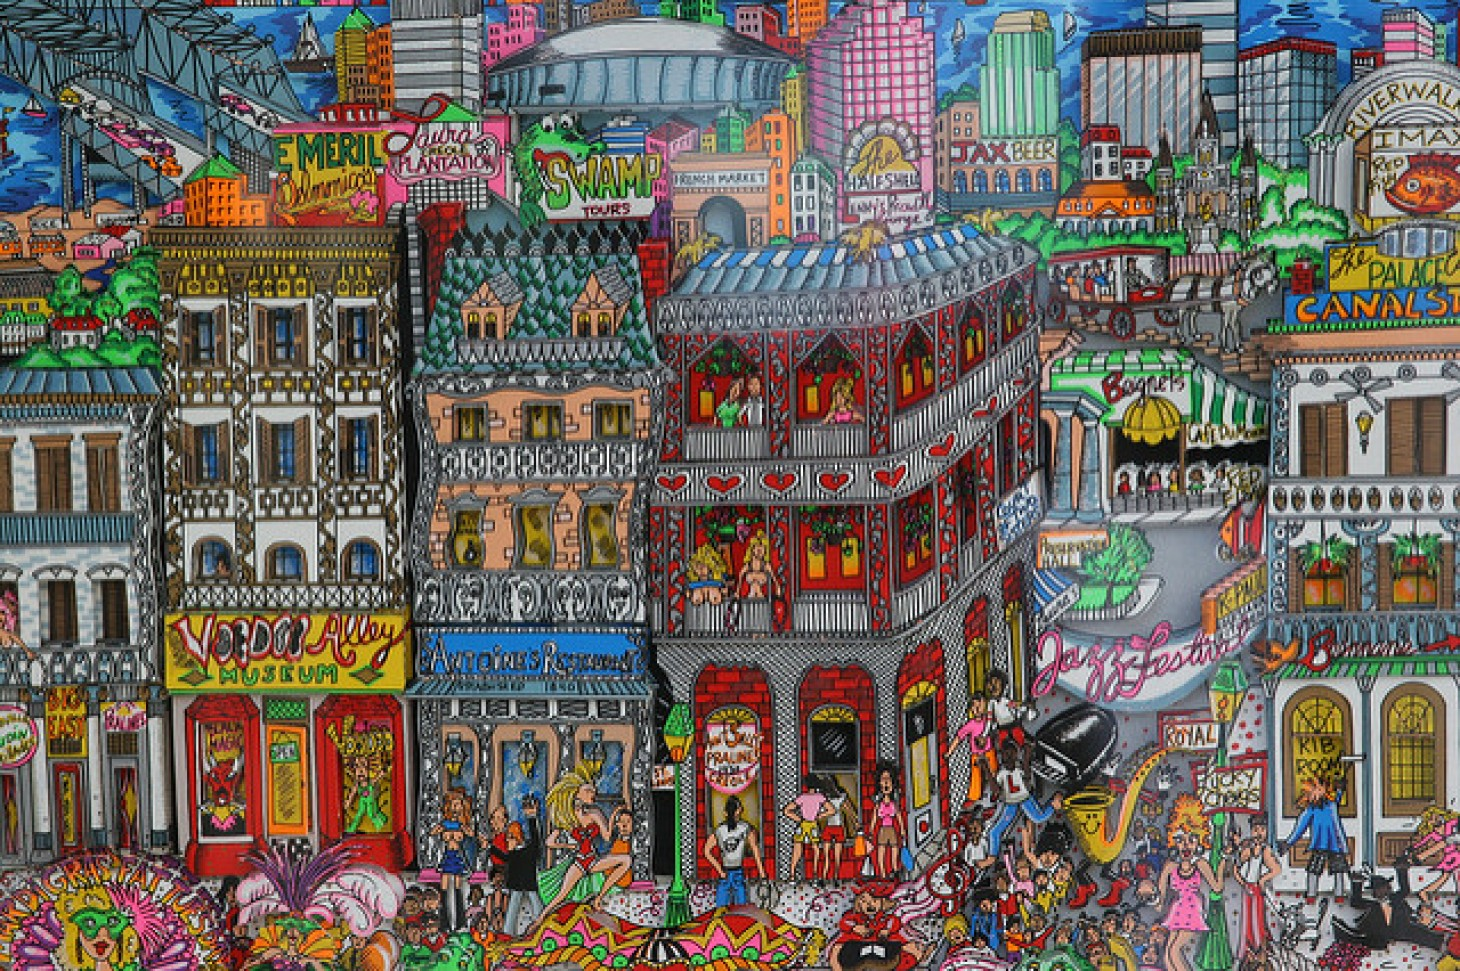 A painting depicting downtown New Orleans and its vibrant culture.